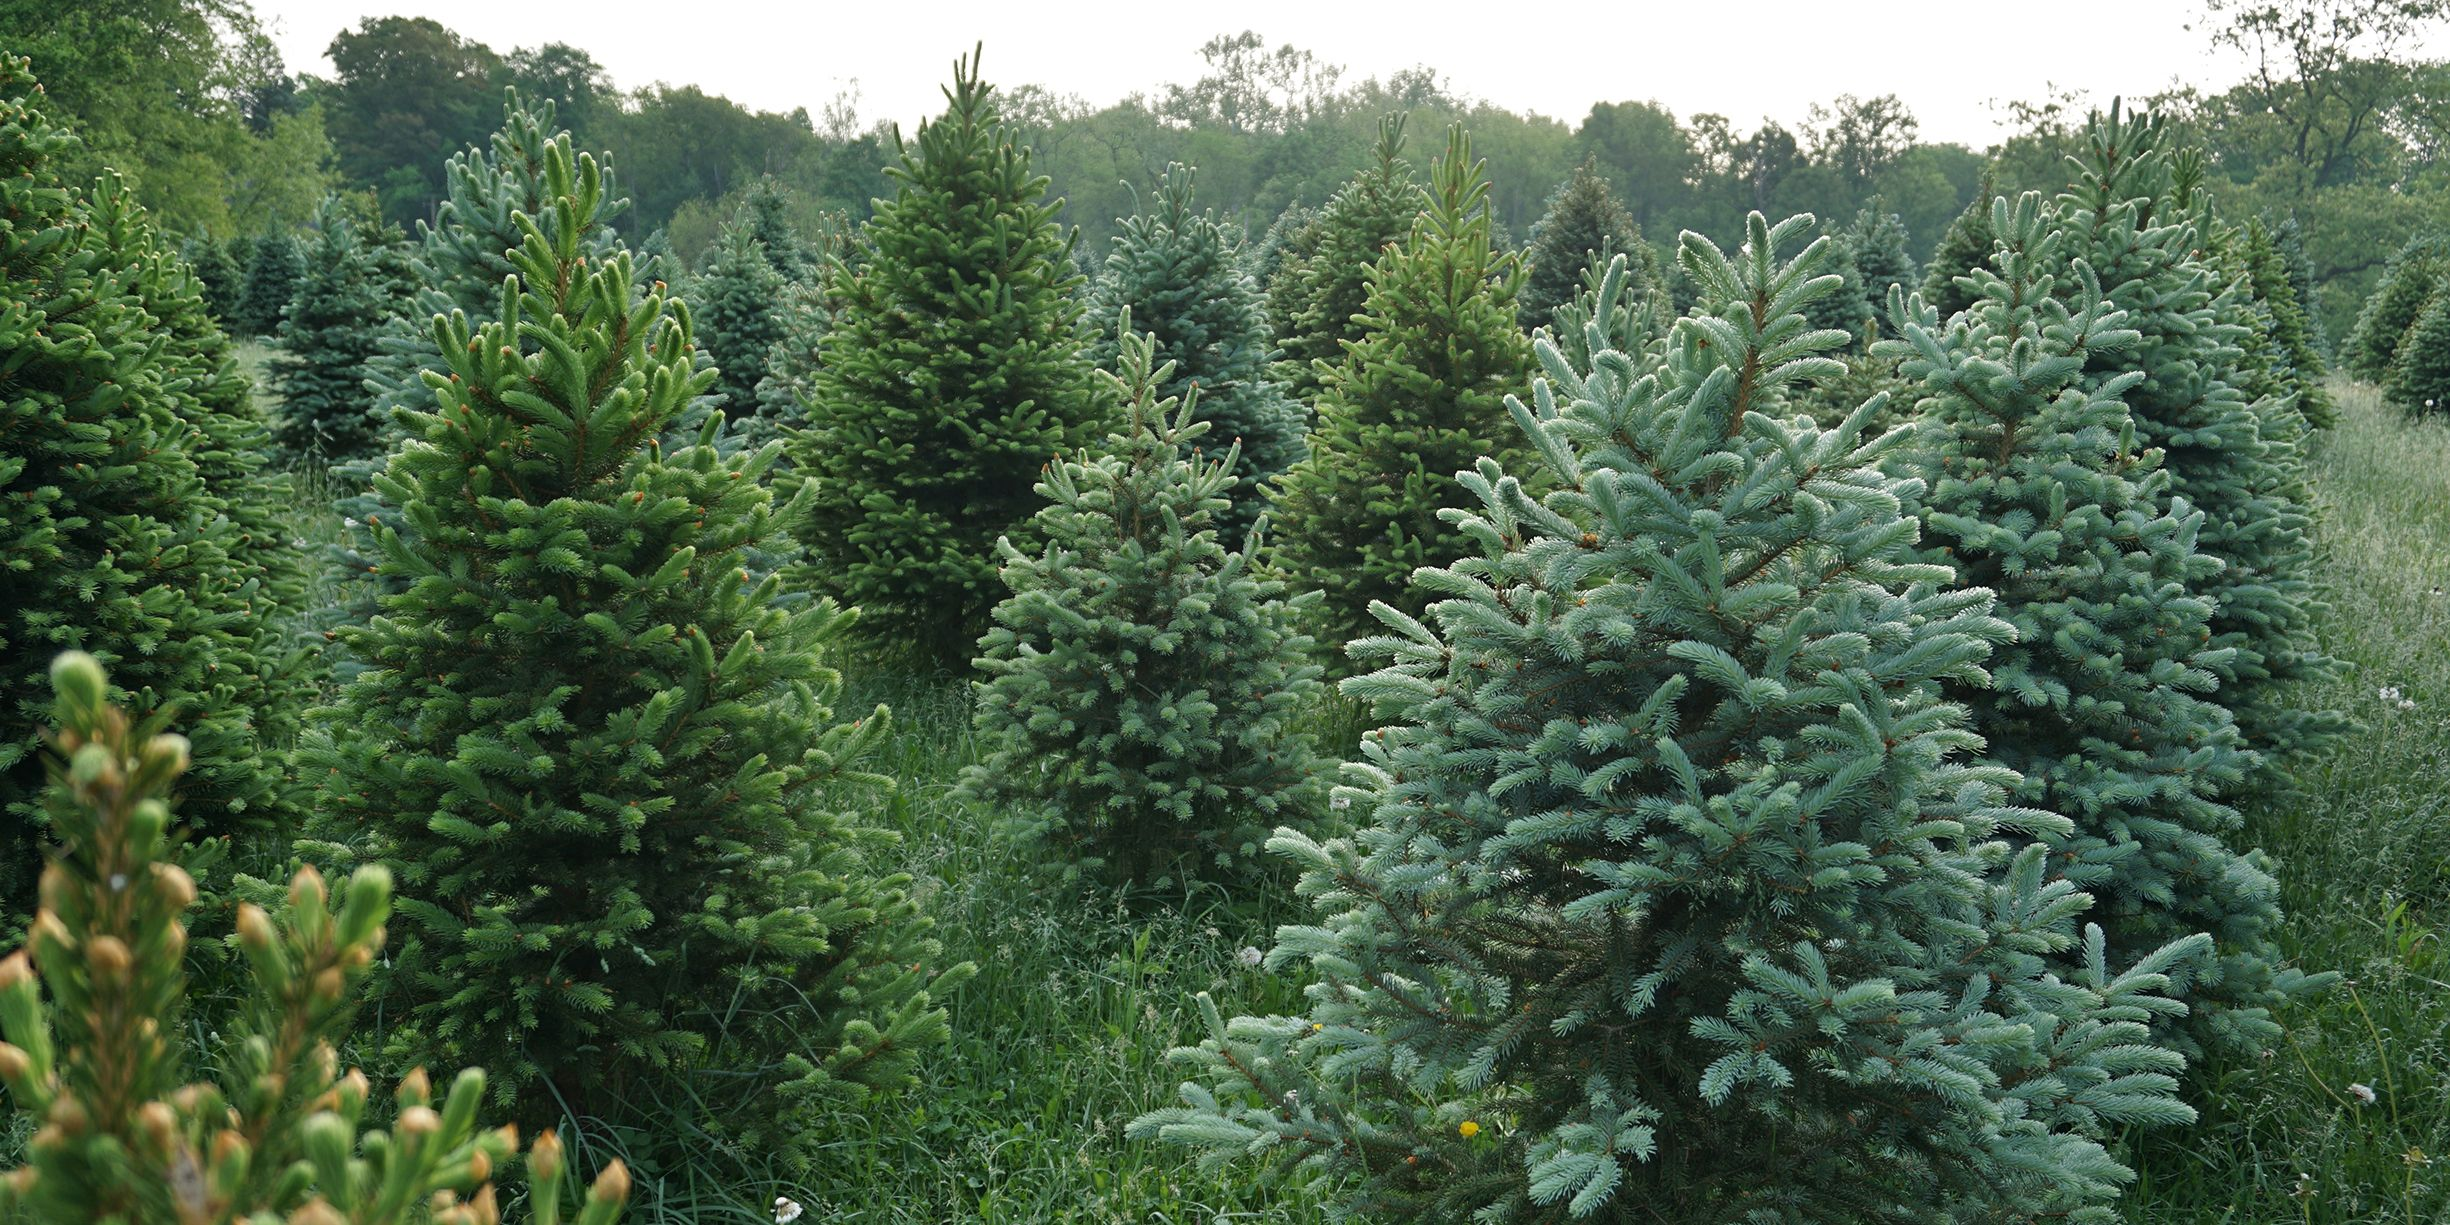 Christmas Tree Farms Near Me - The Best Christmas Tree Farms in America